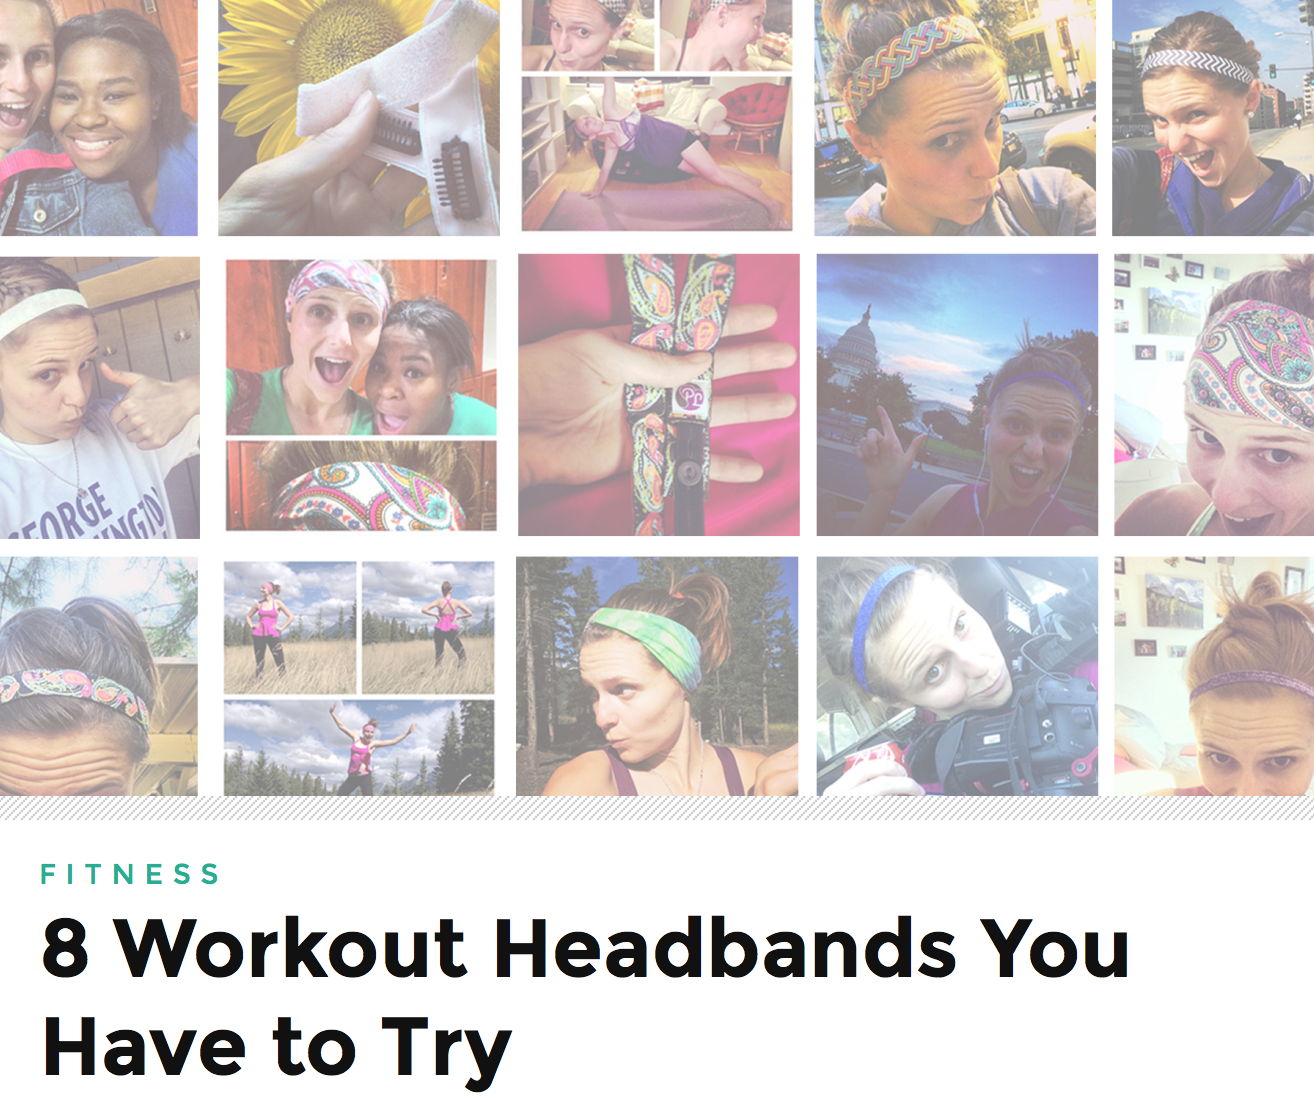 http://www.fiterazzi.com/2014/10/03/8-workout-headbands-you-have-to-try/